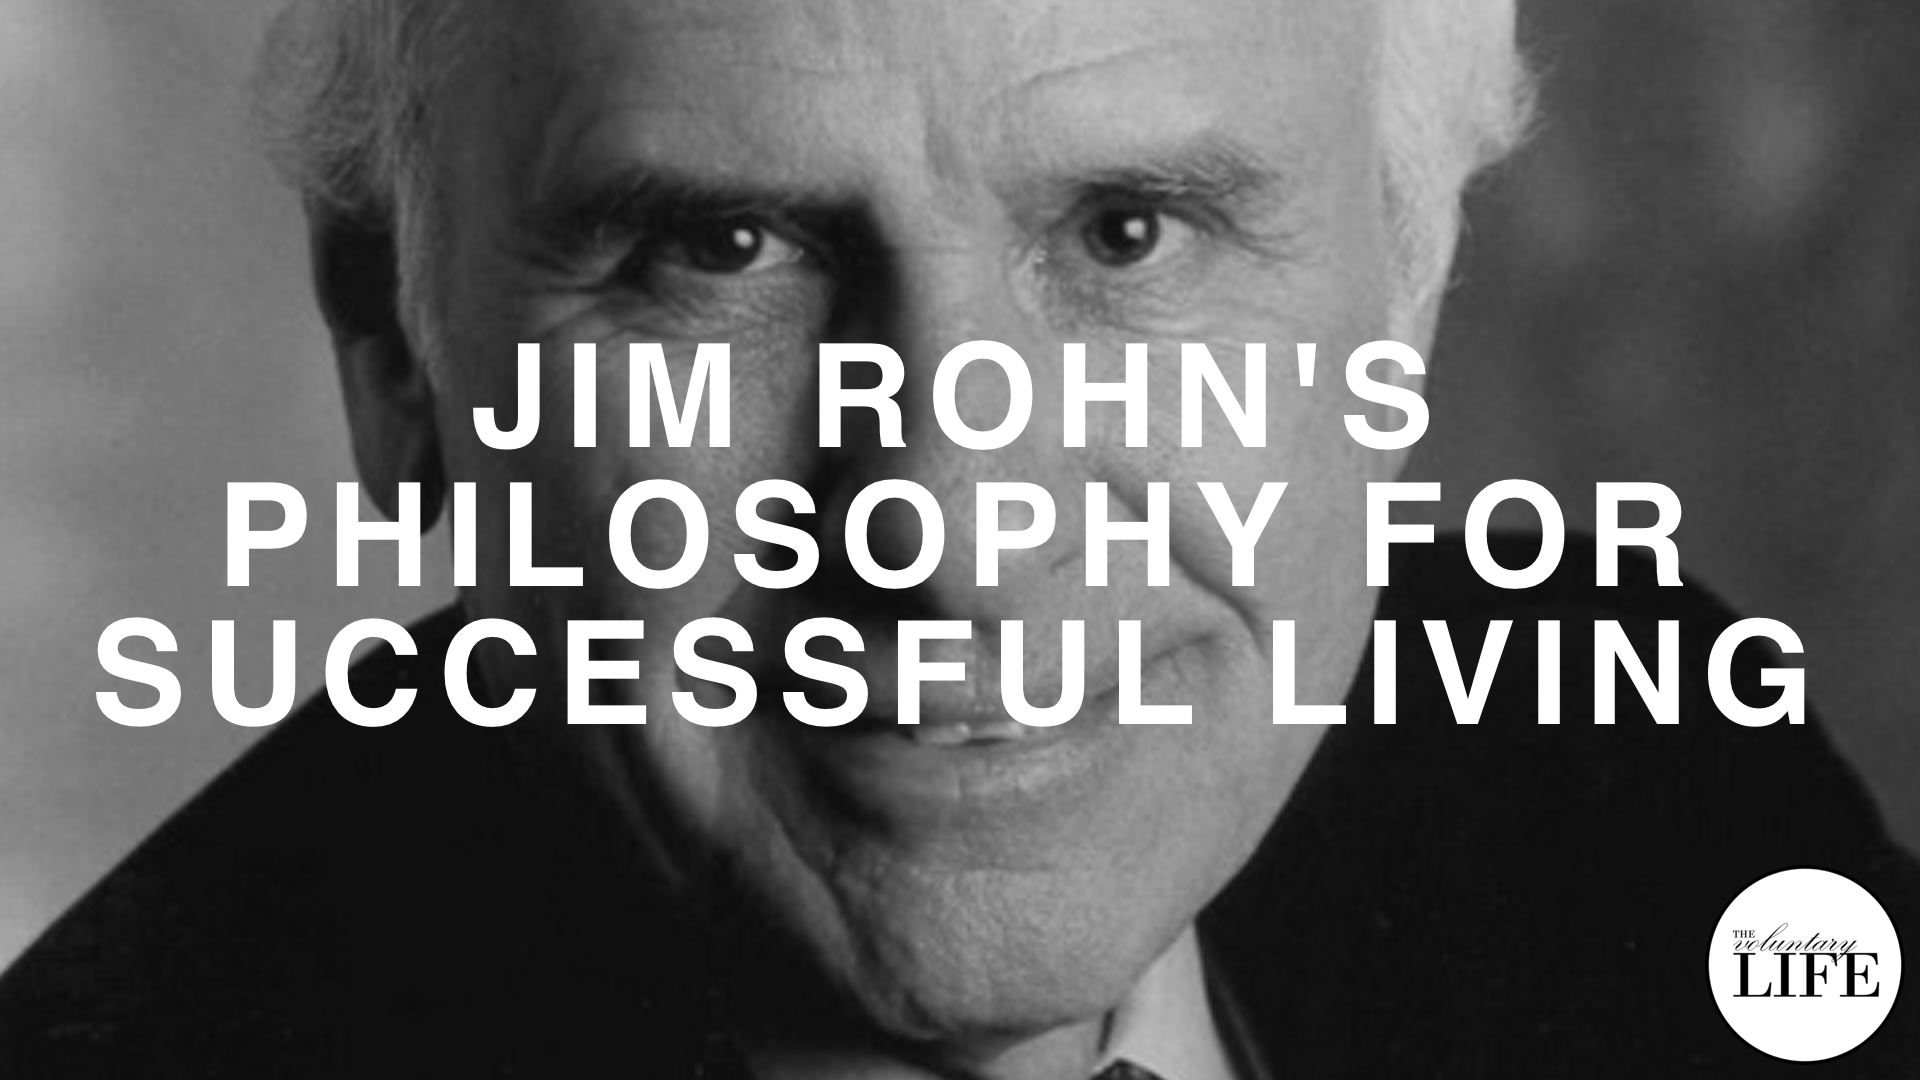 326 Jim Rohn's Philosophy for Successful Living